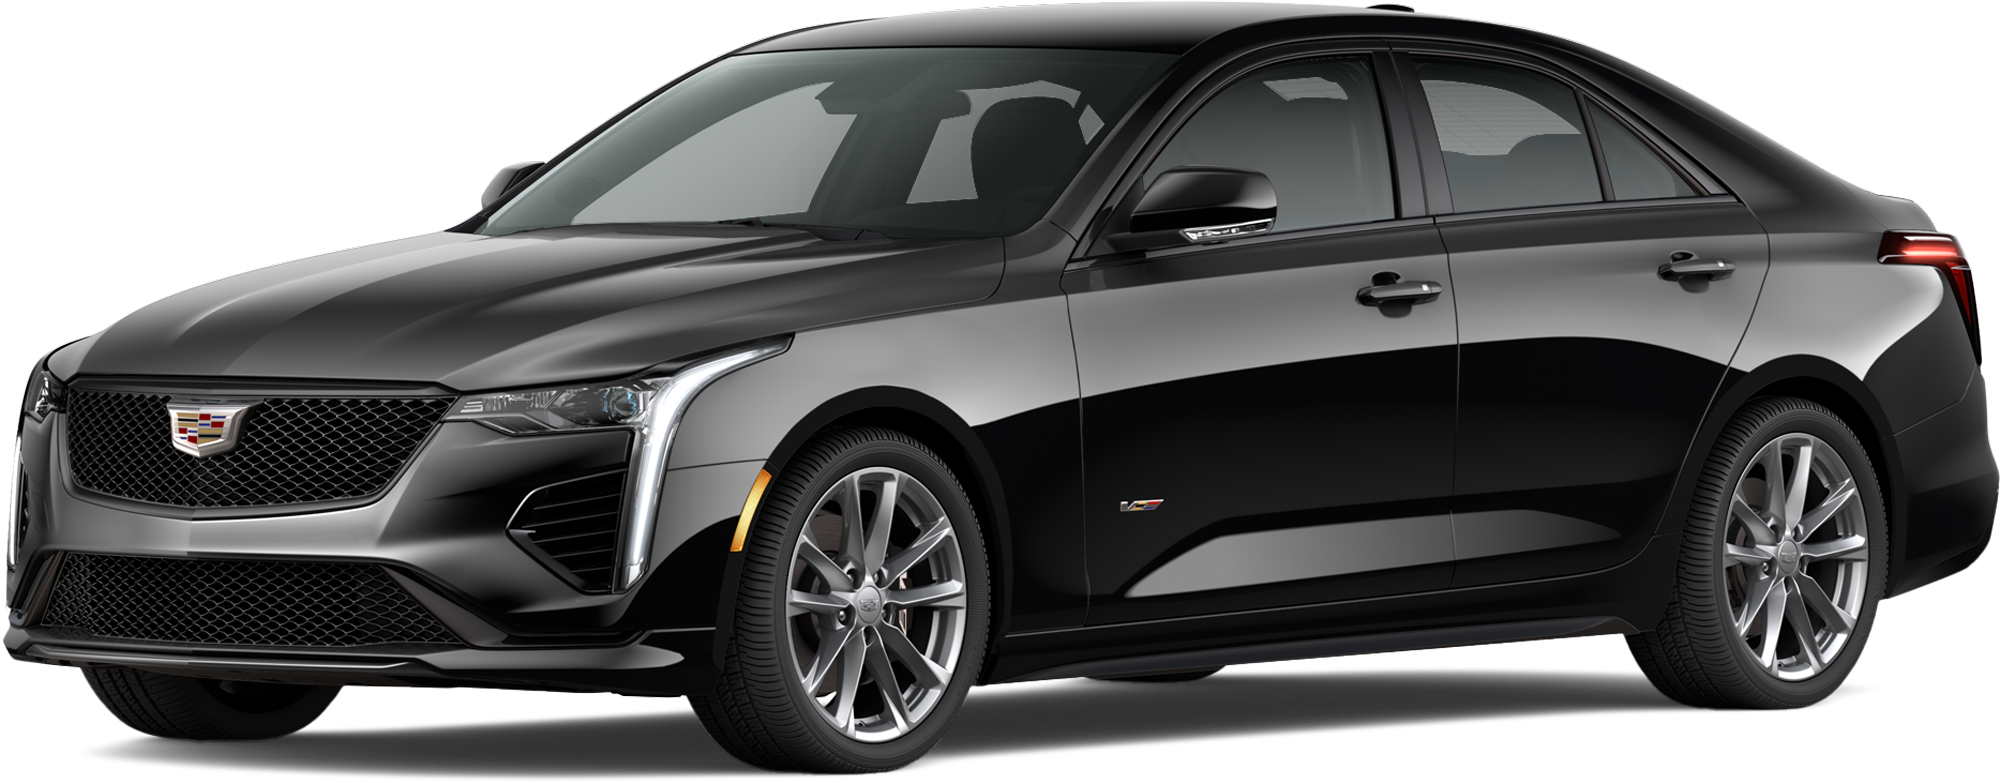 2020 CADILLAC CT4-V Sedan V-Series